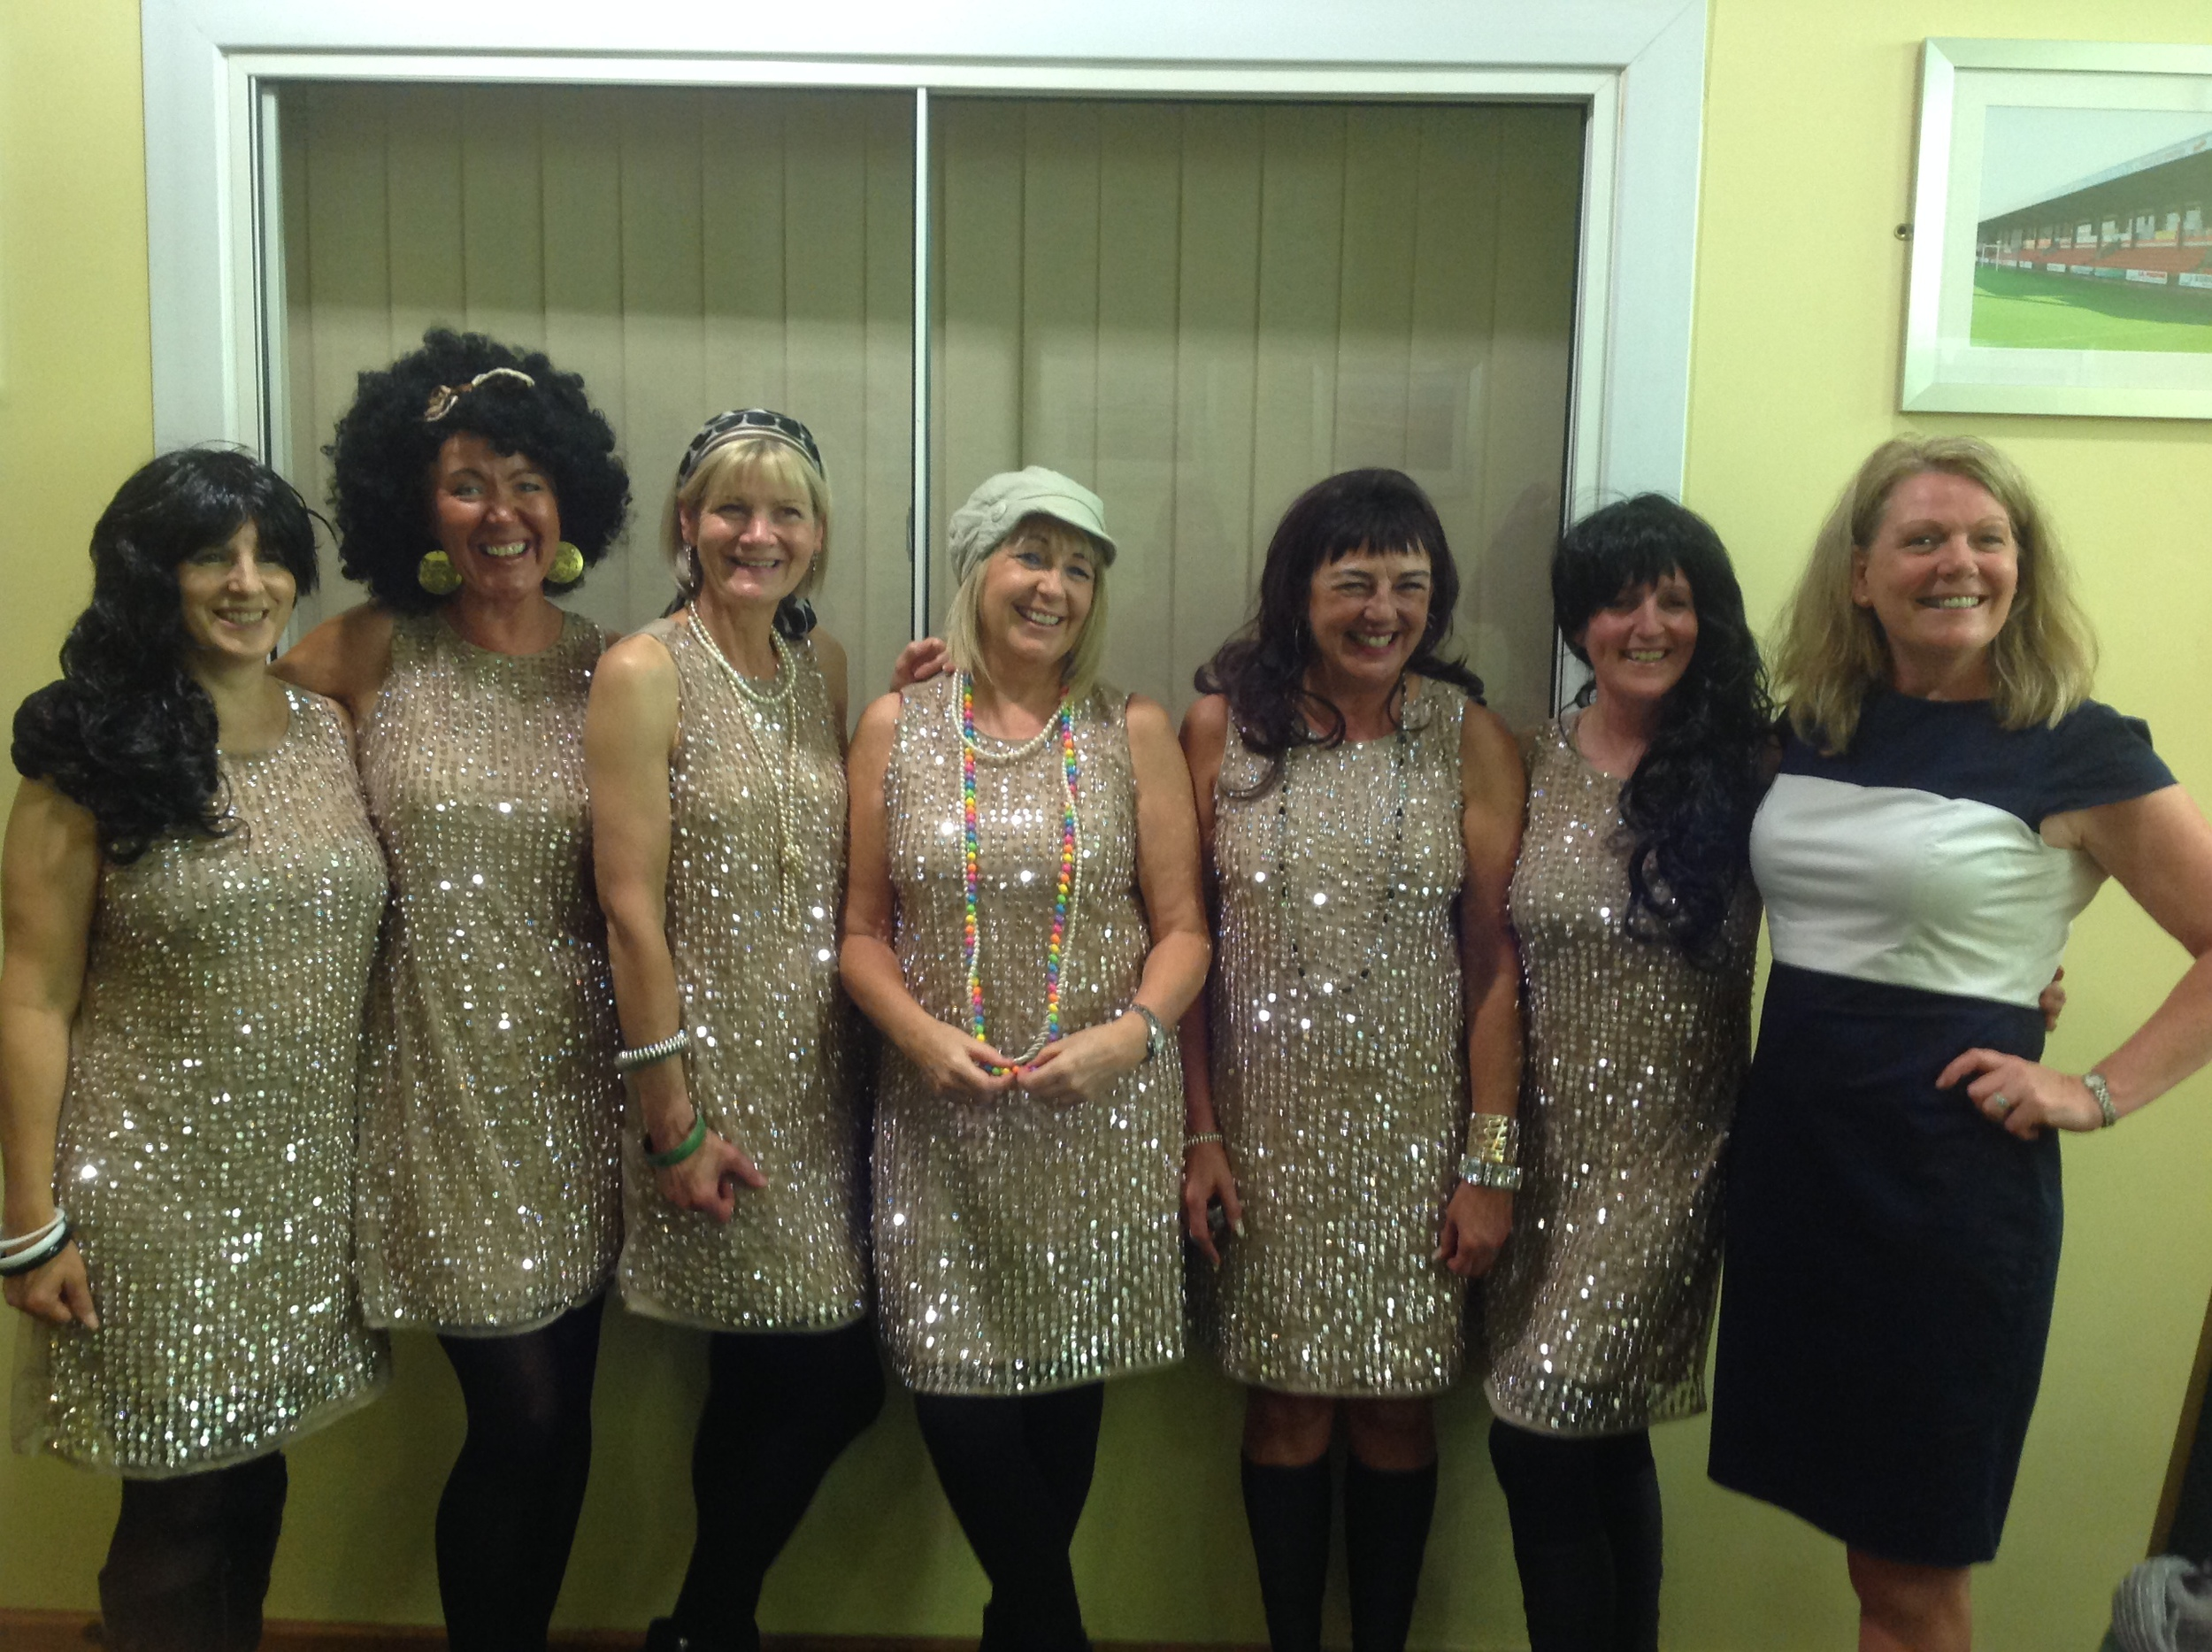 Bernie (2nd from right) and her lovely friends at the 70's night